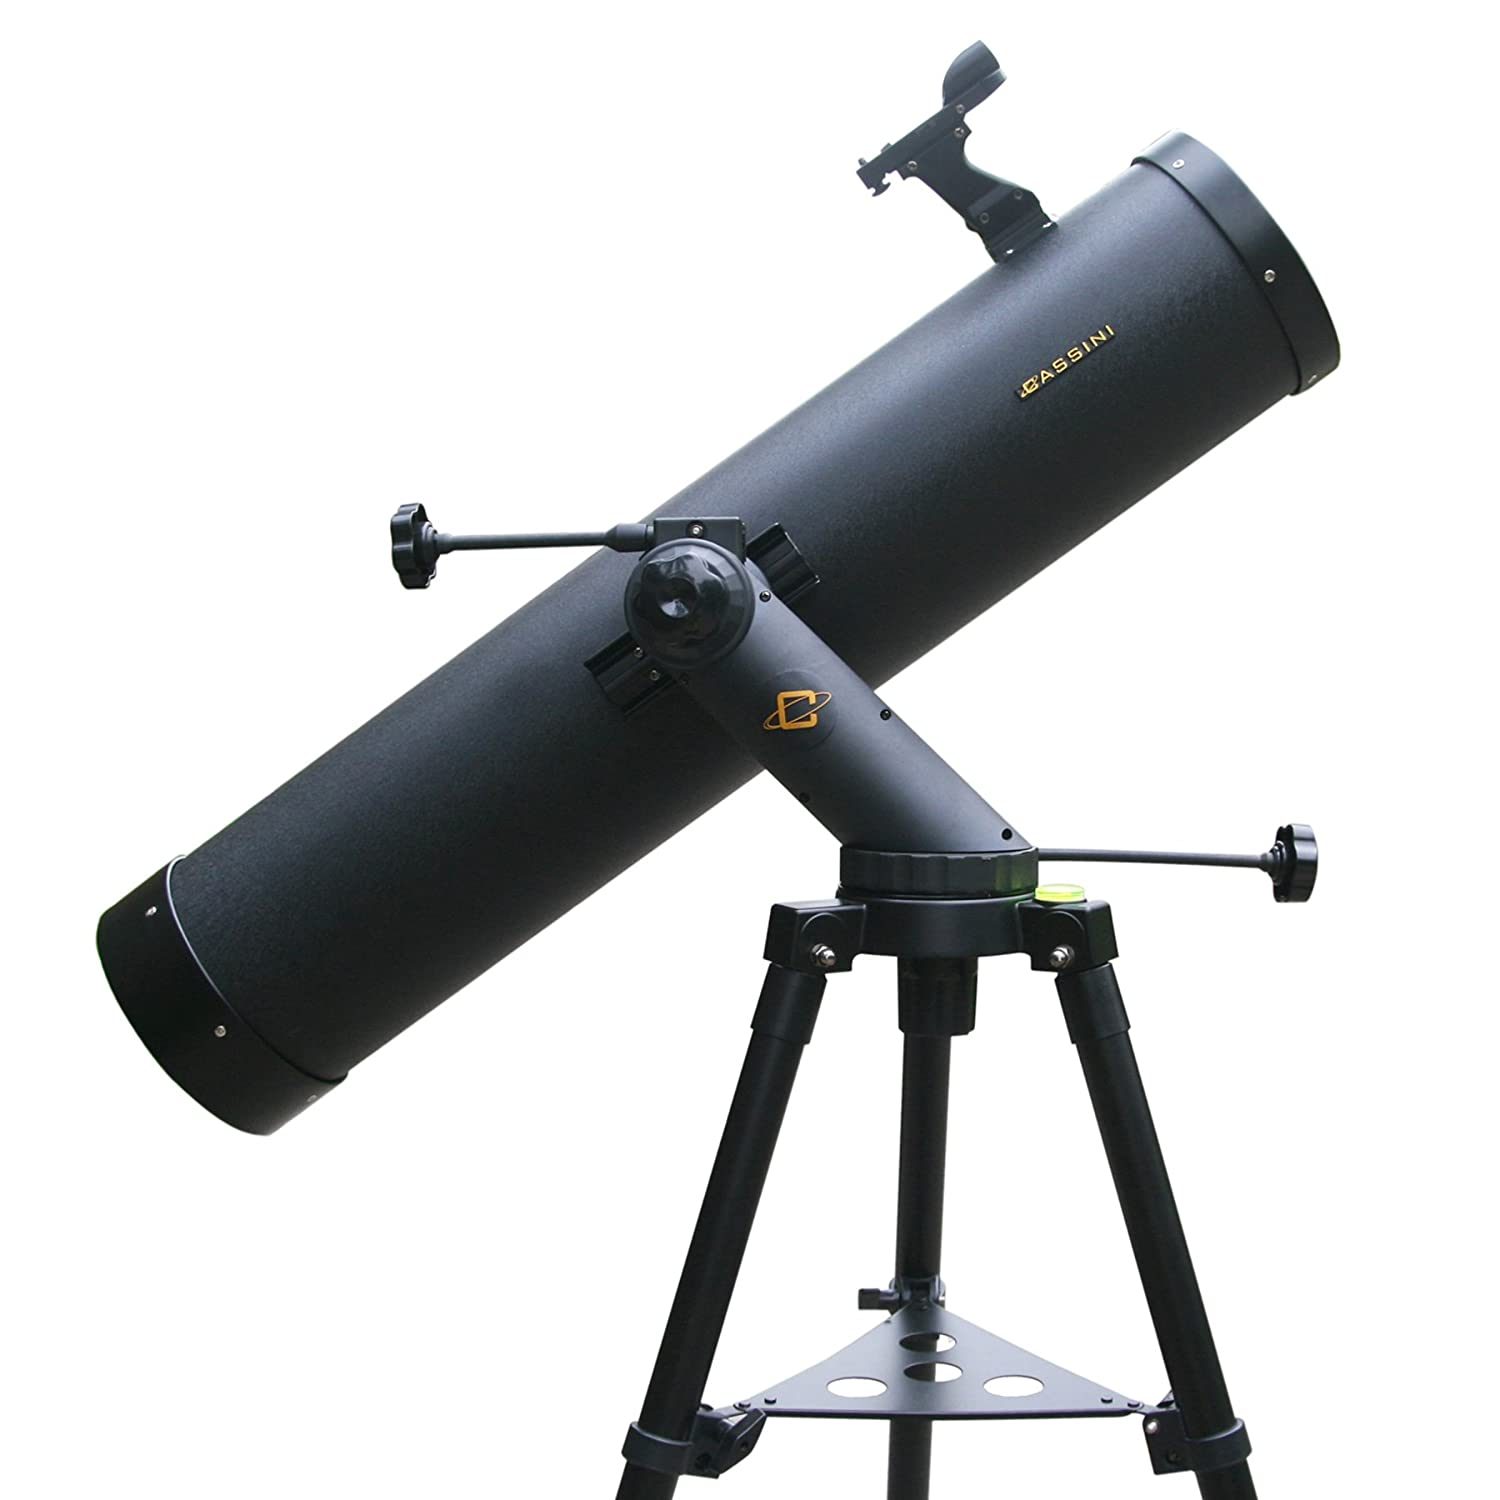 Cassini 900mm x 135mm Reflector Telescope with Color Filter Wheel